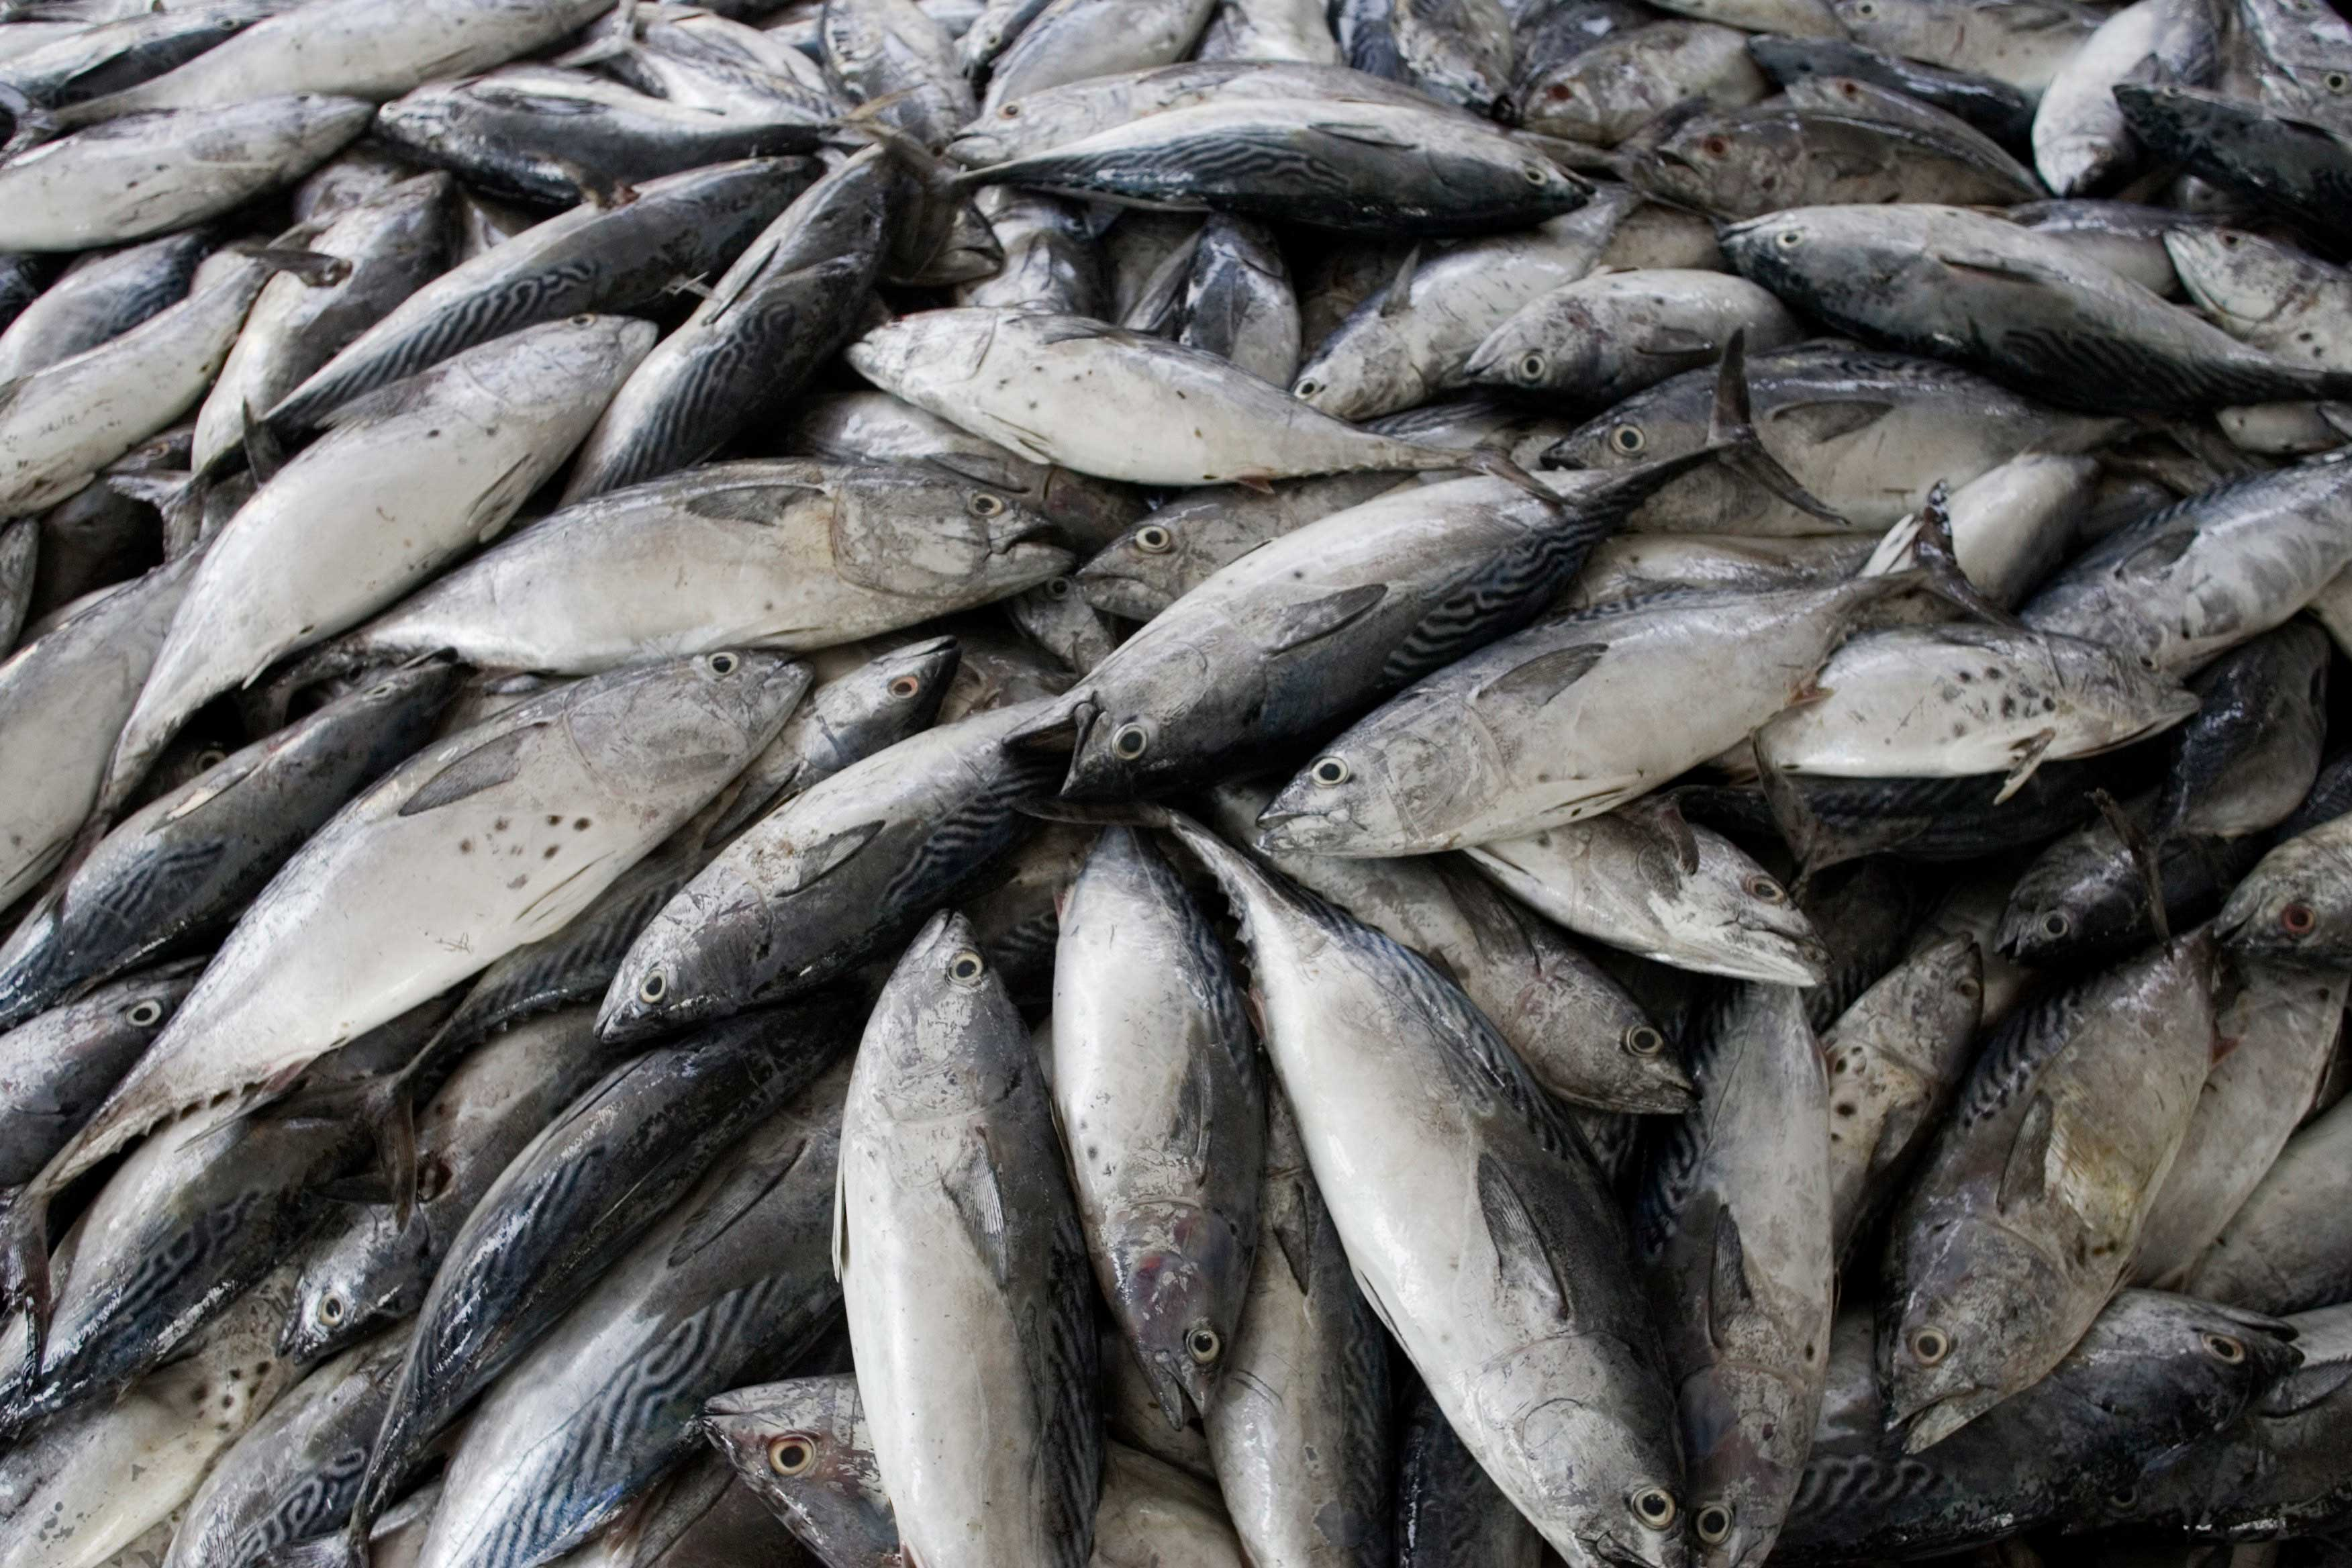 Rains and winds deal harsh blow to local fish prices